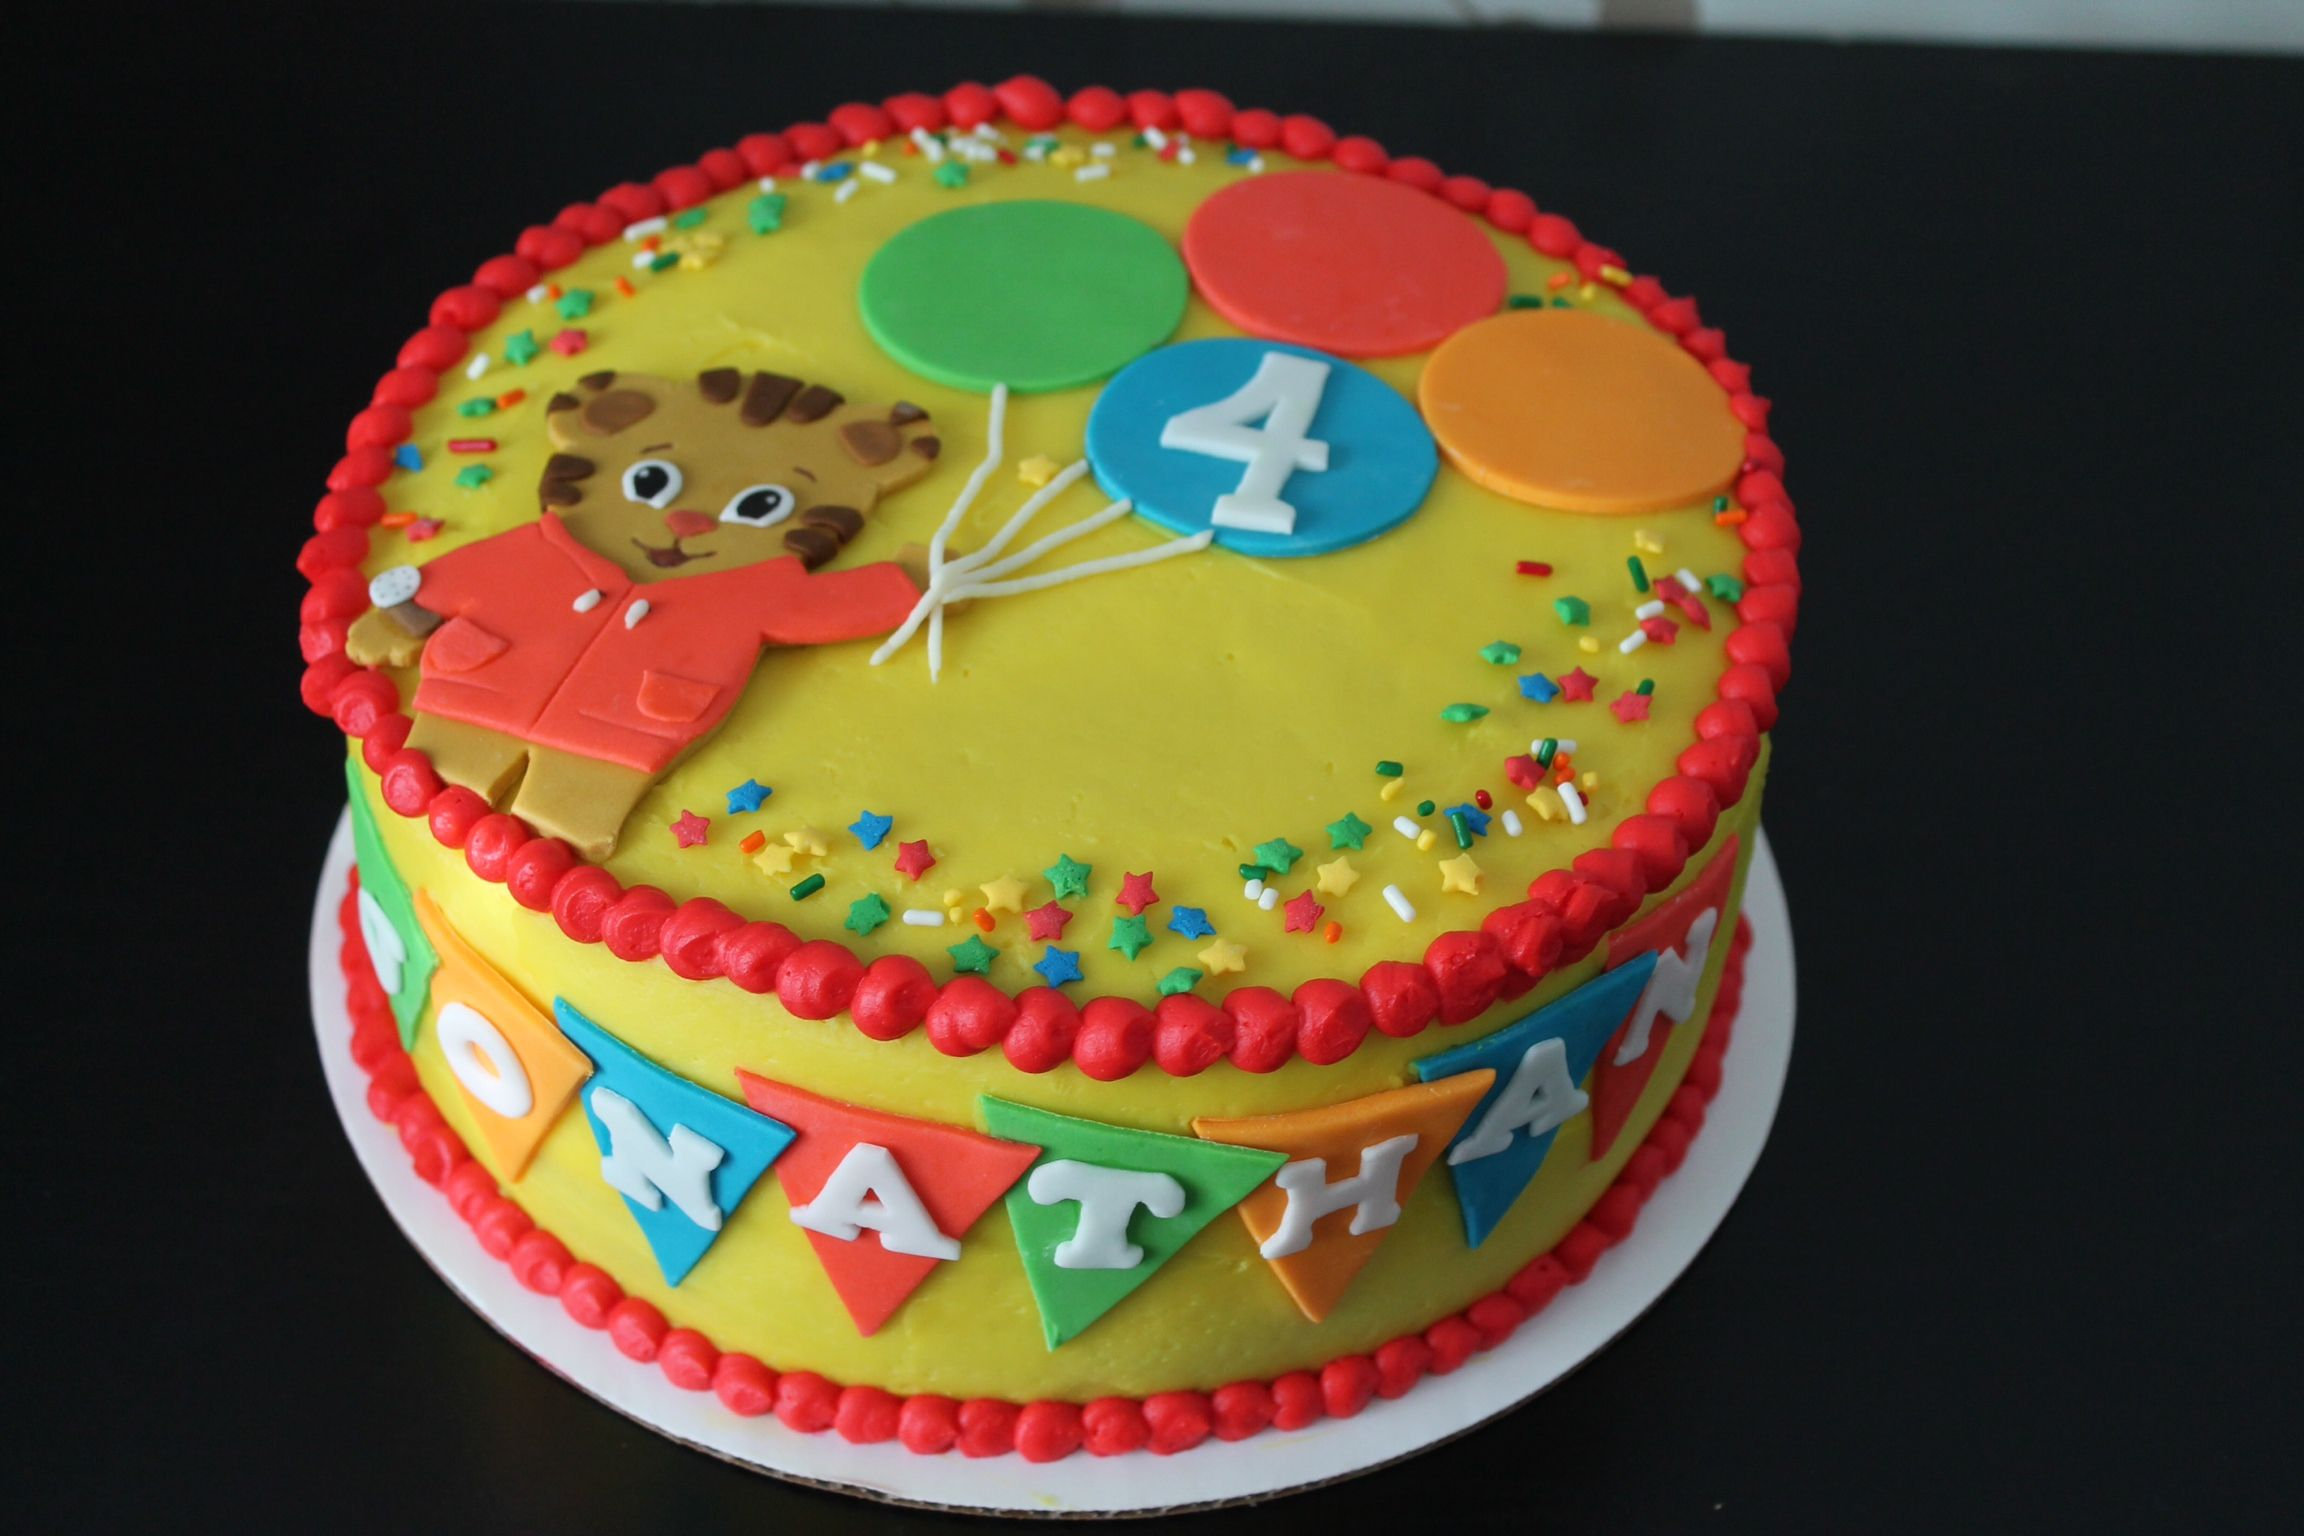 Pin Daniel Tiger Birthday Cake Cake on Pinterest